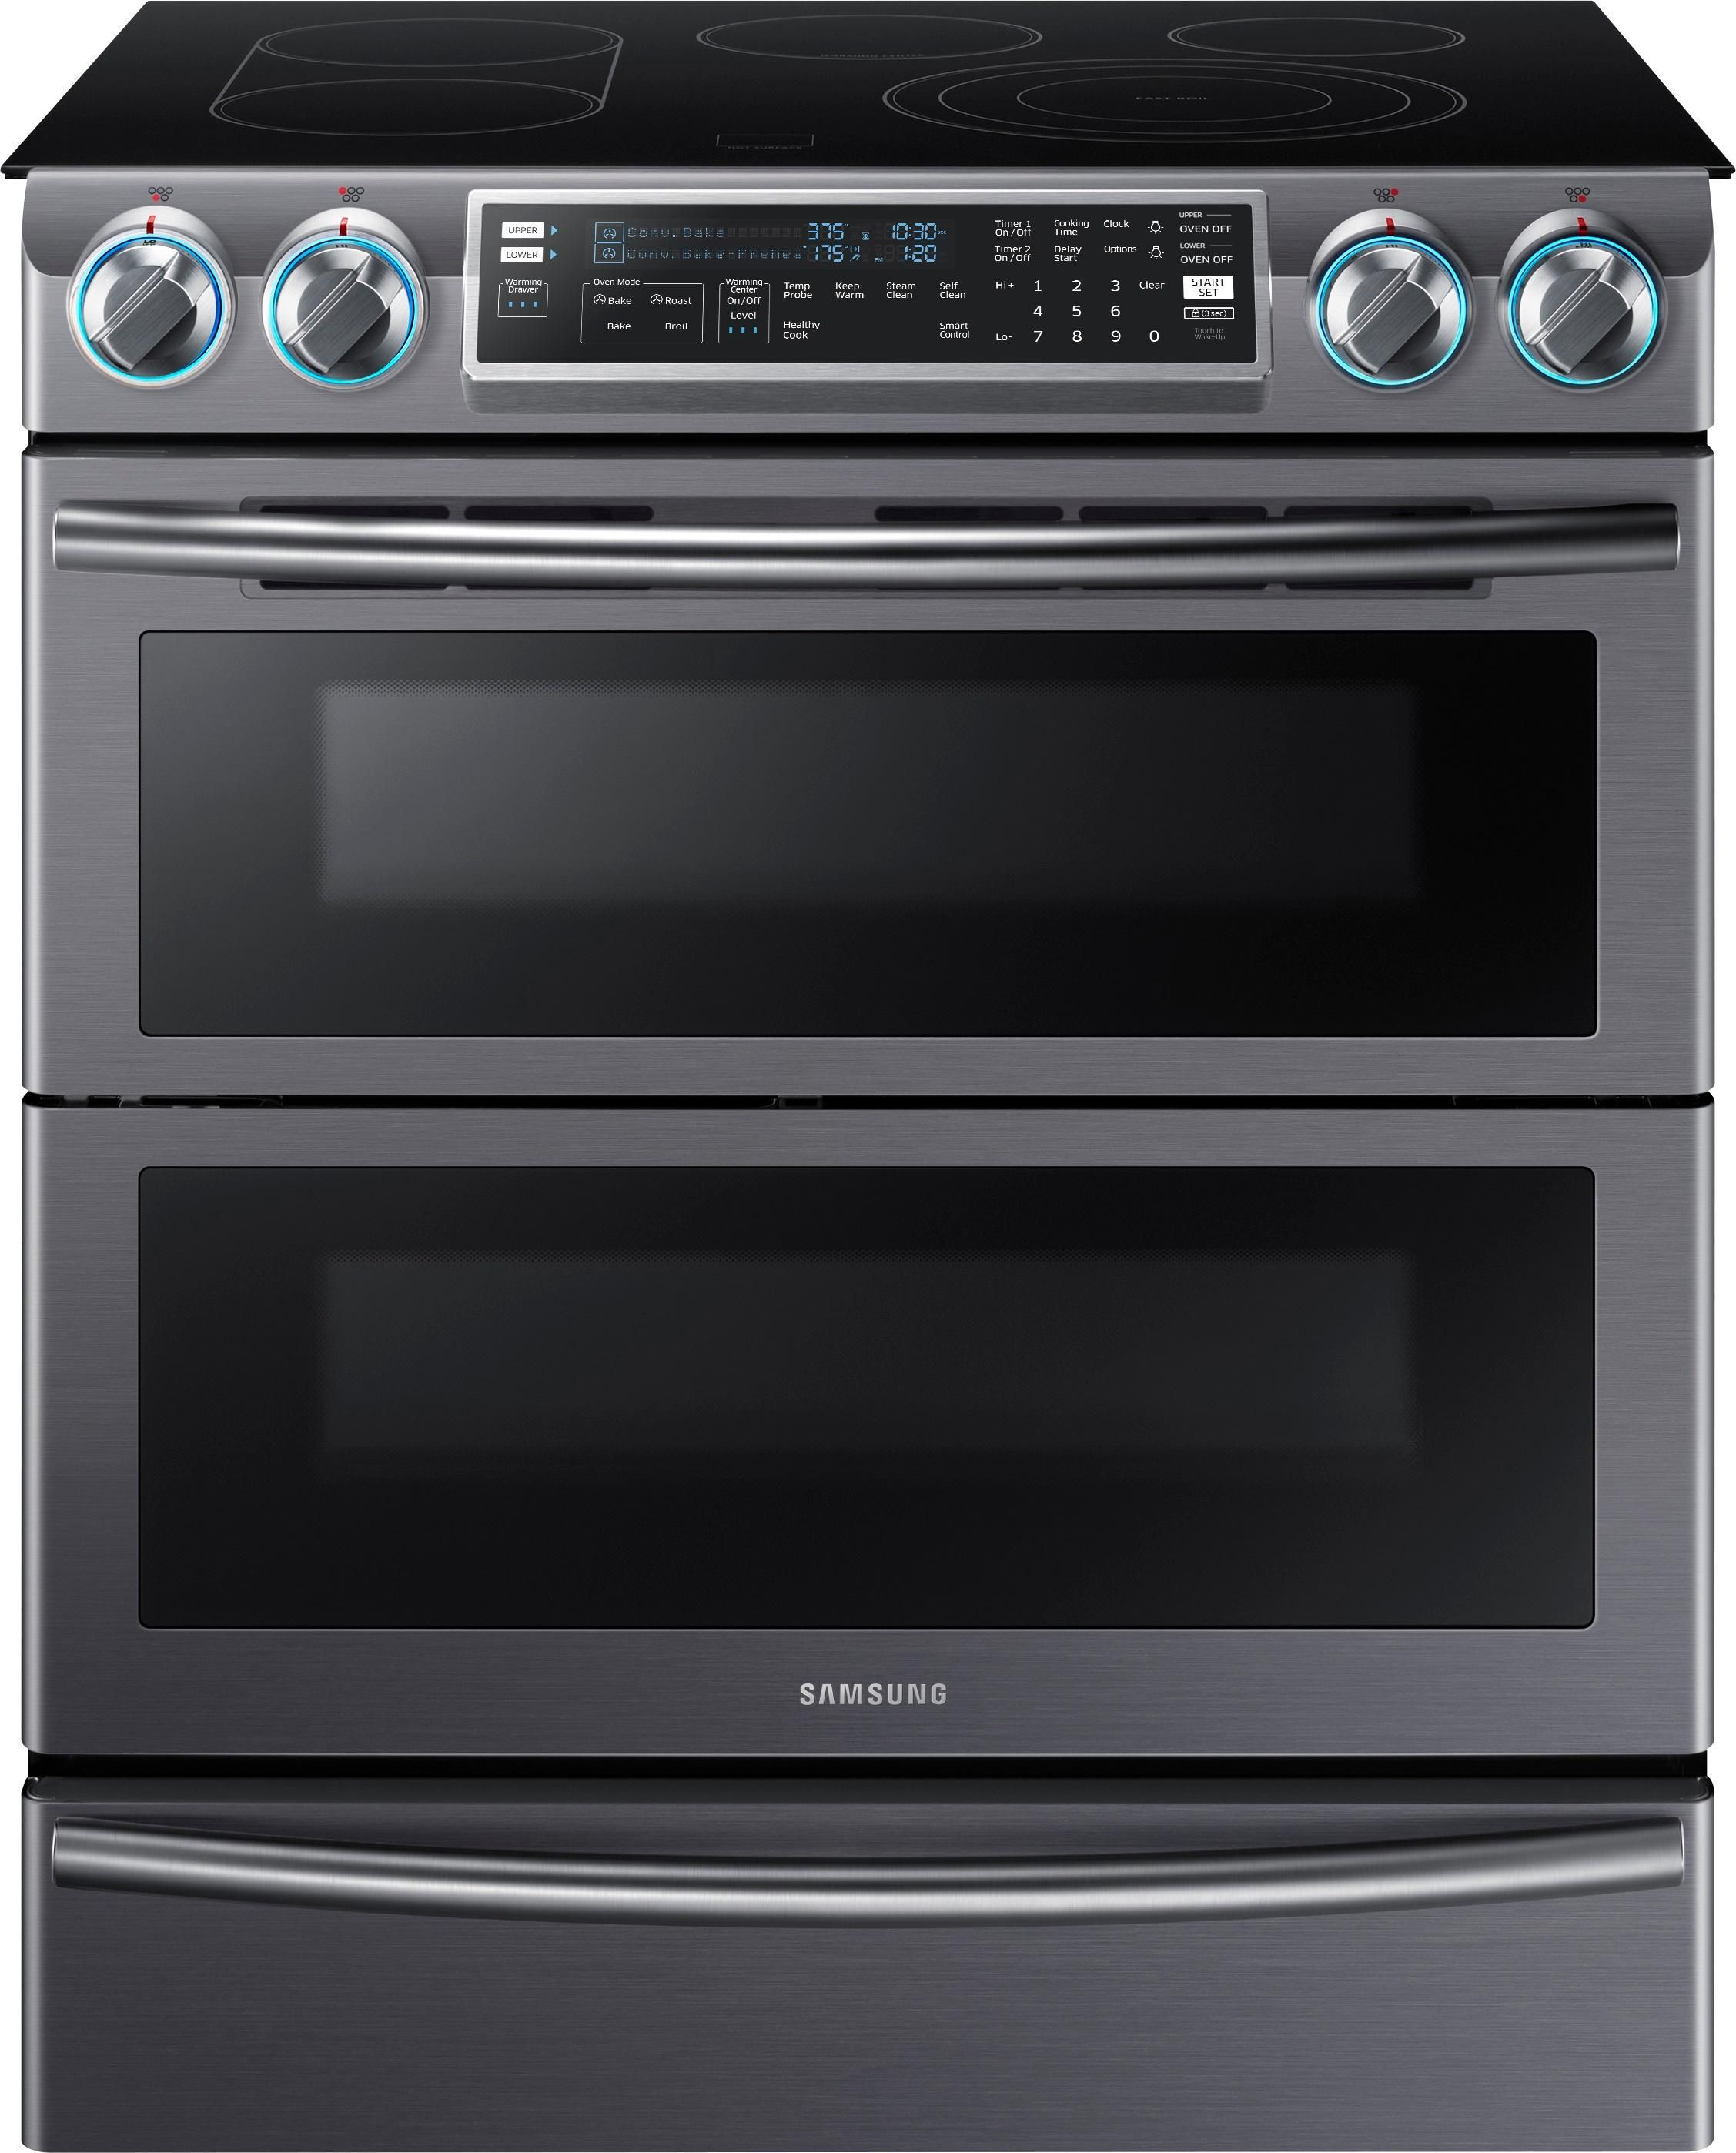 Stainless Steel Samsung Appliances Are Standard In All Cavender